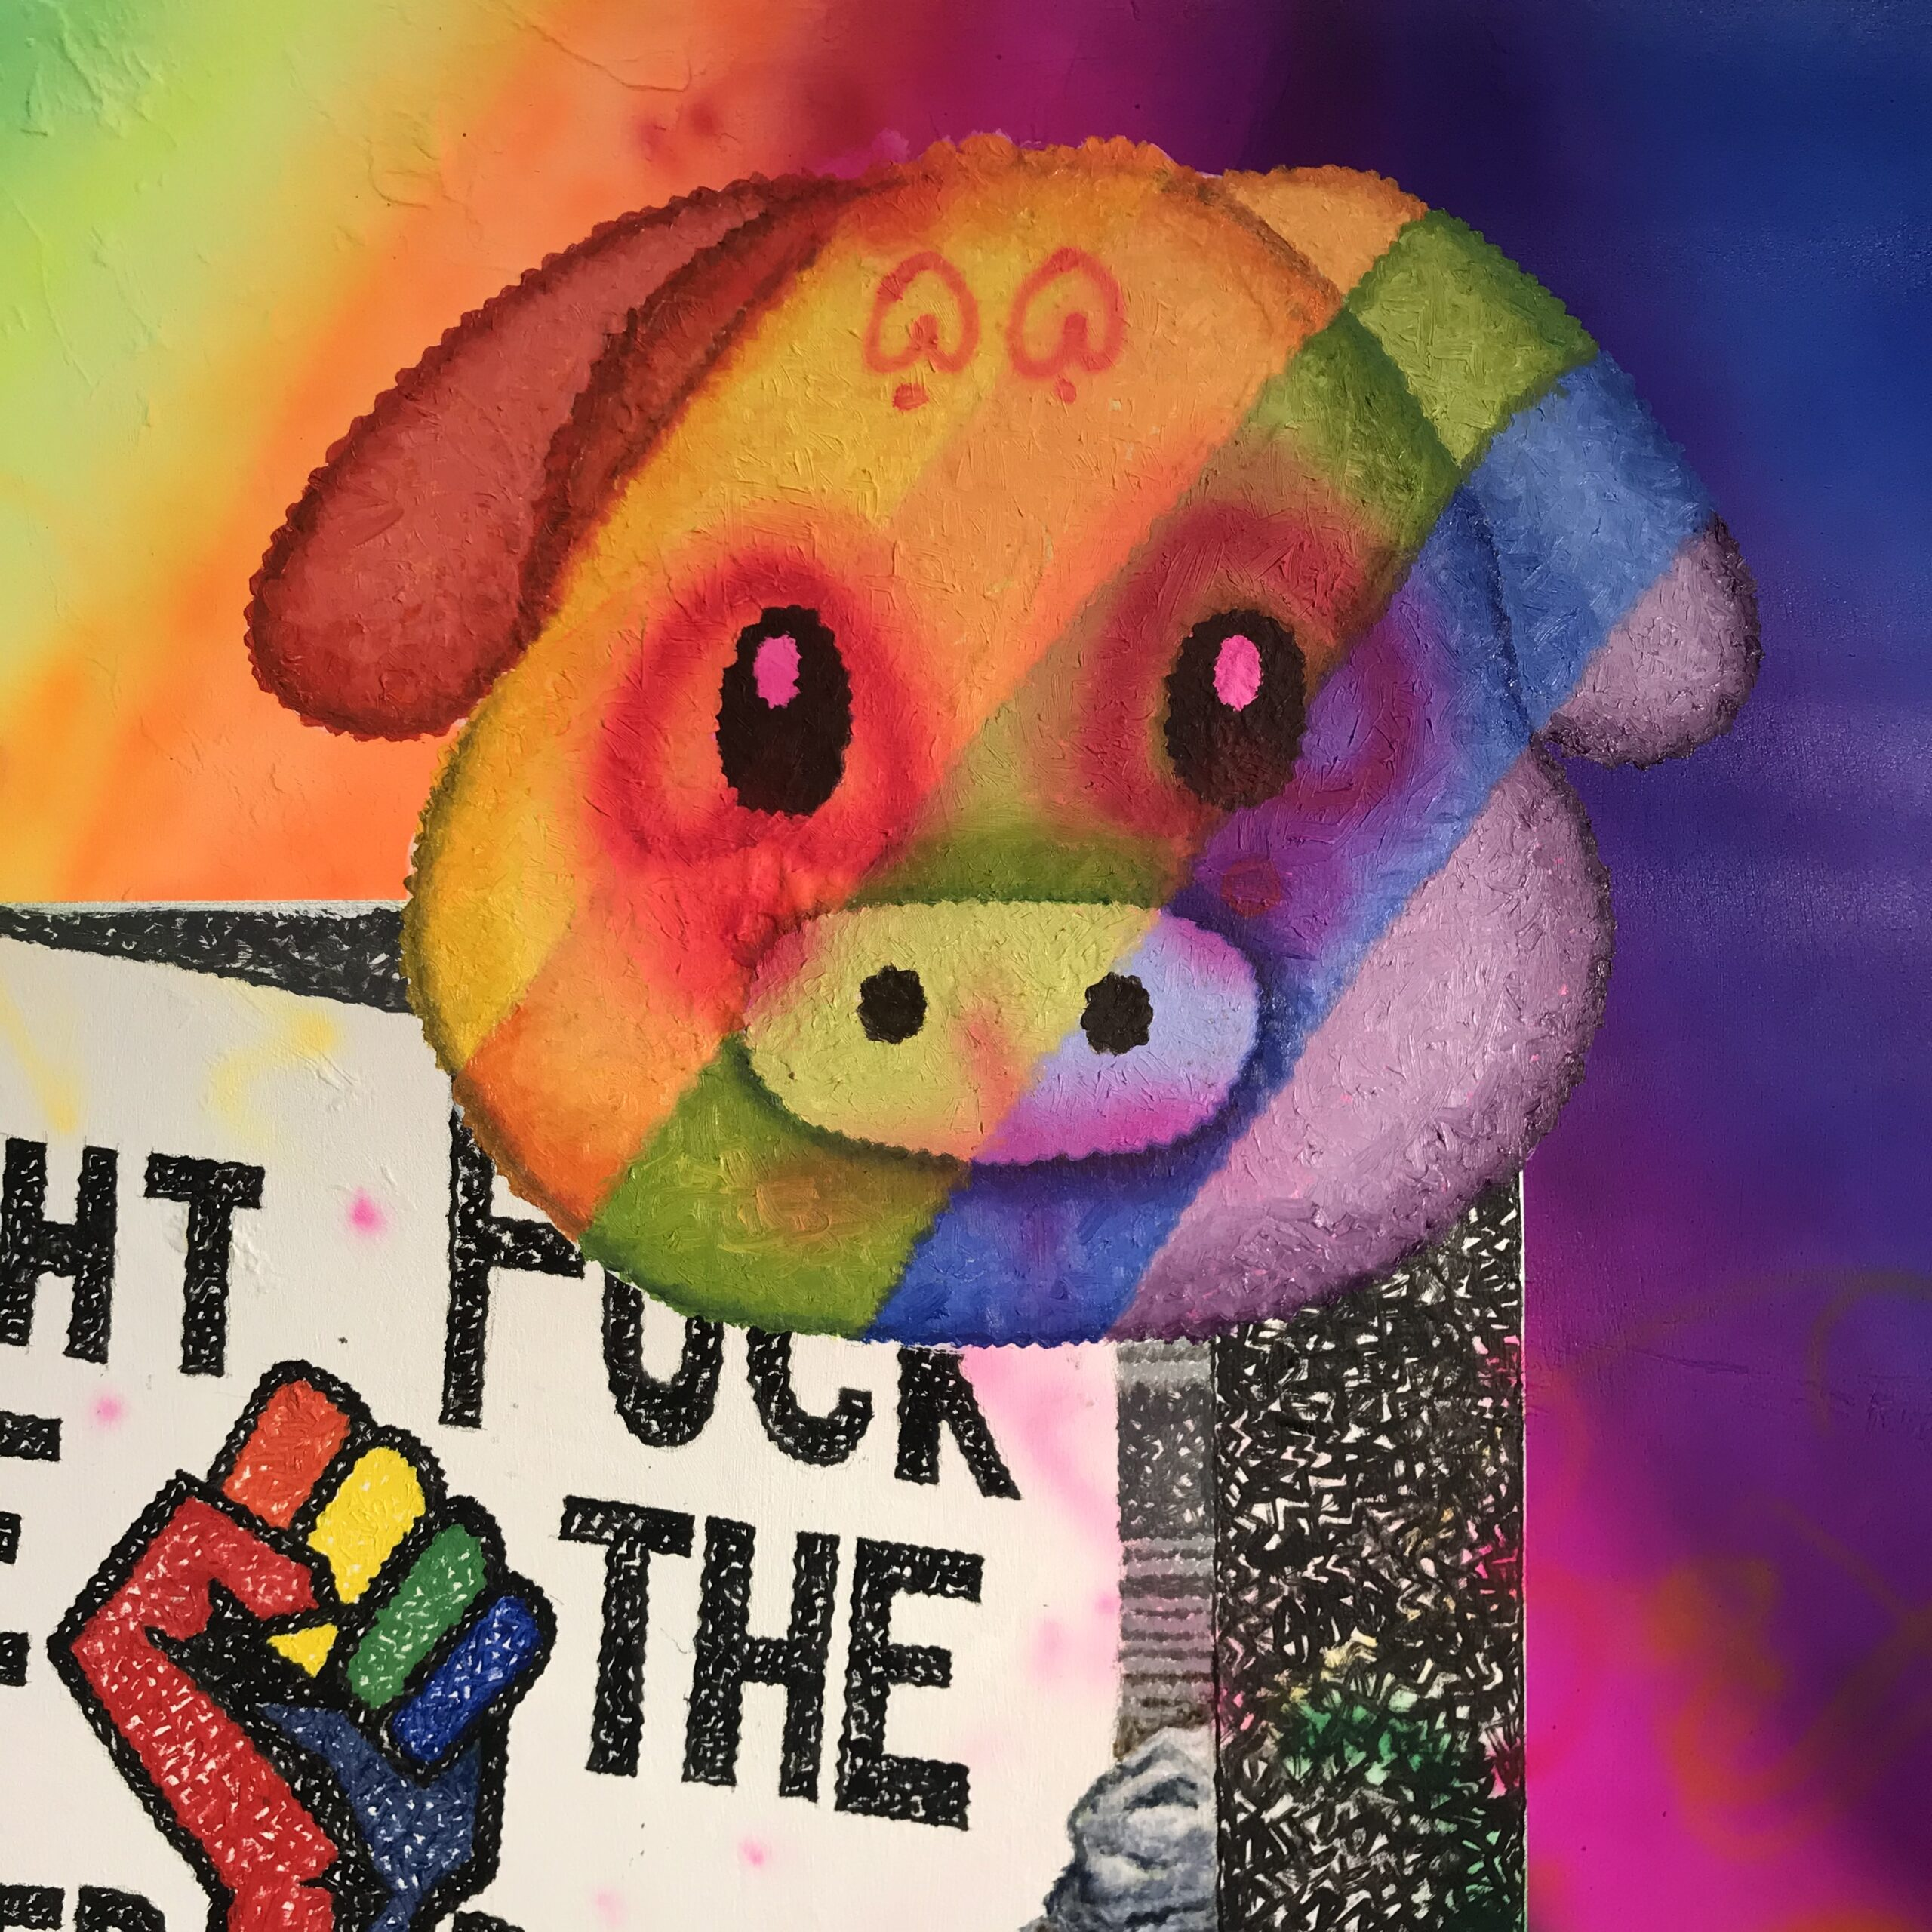 12. a Fight the Power, F*ck the Police meme (detail)